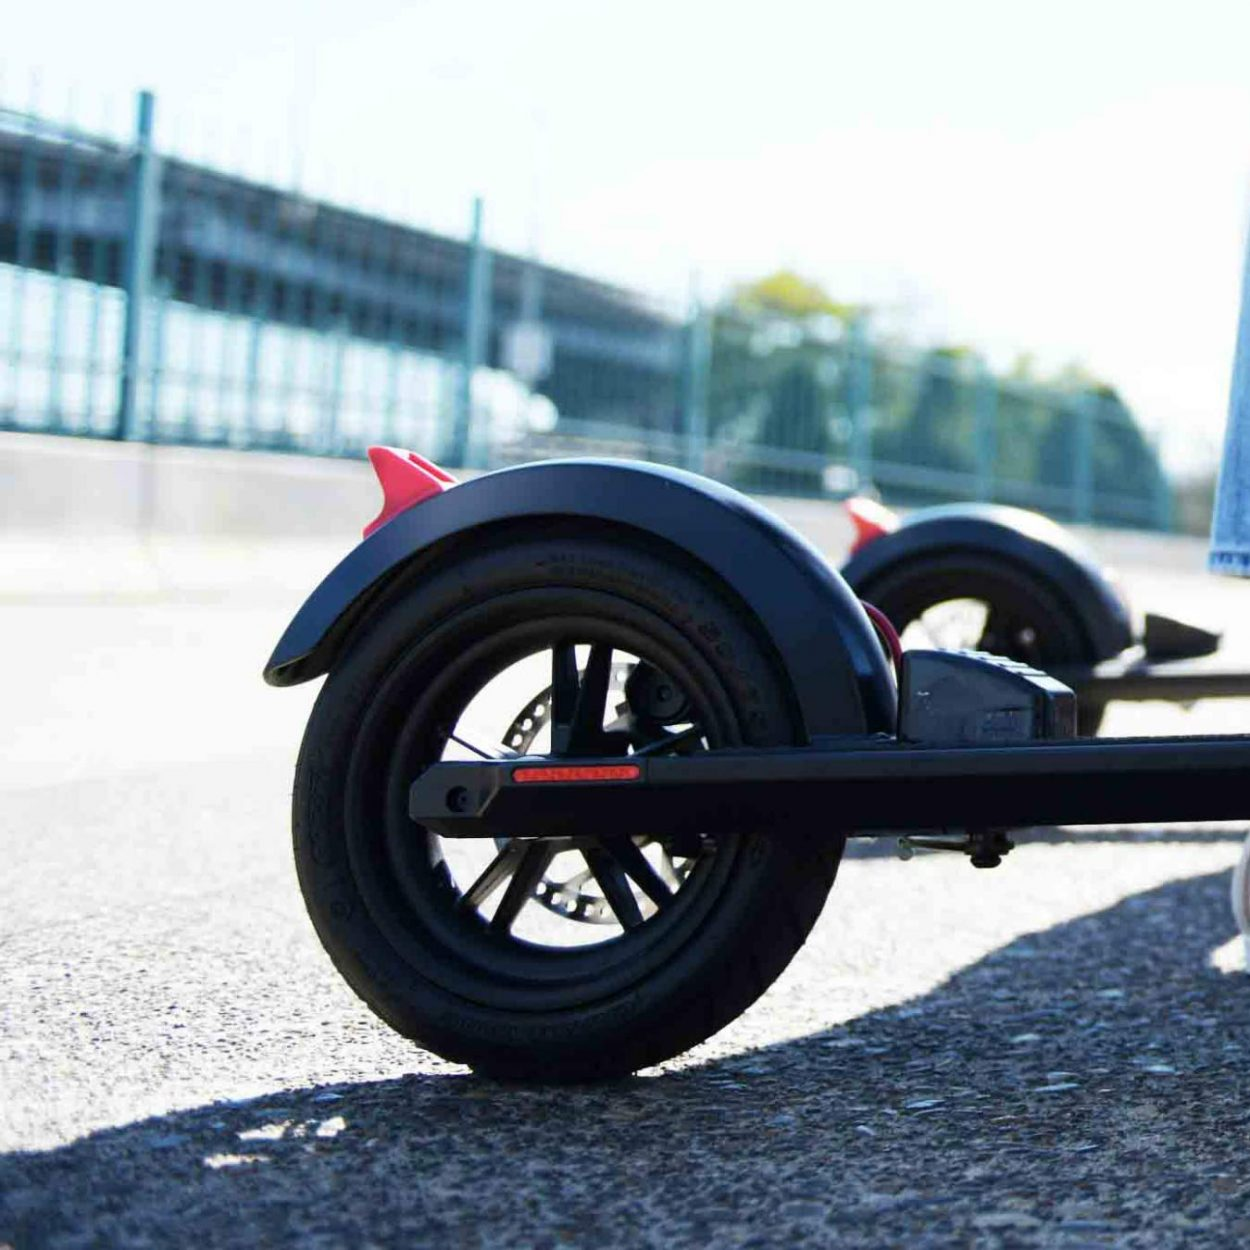 GOTRAX: Electric Scooter for Commuters